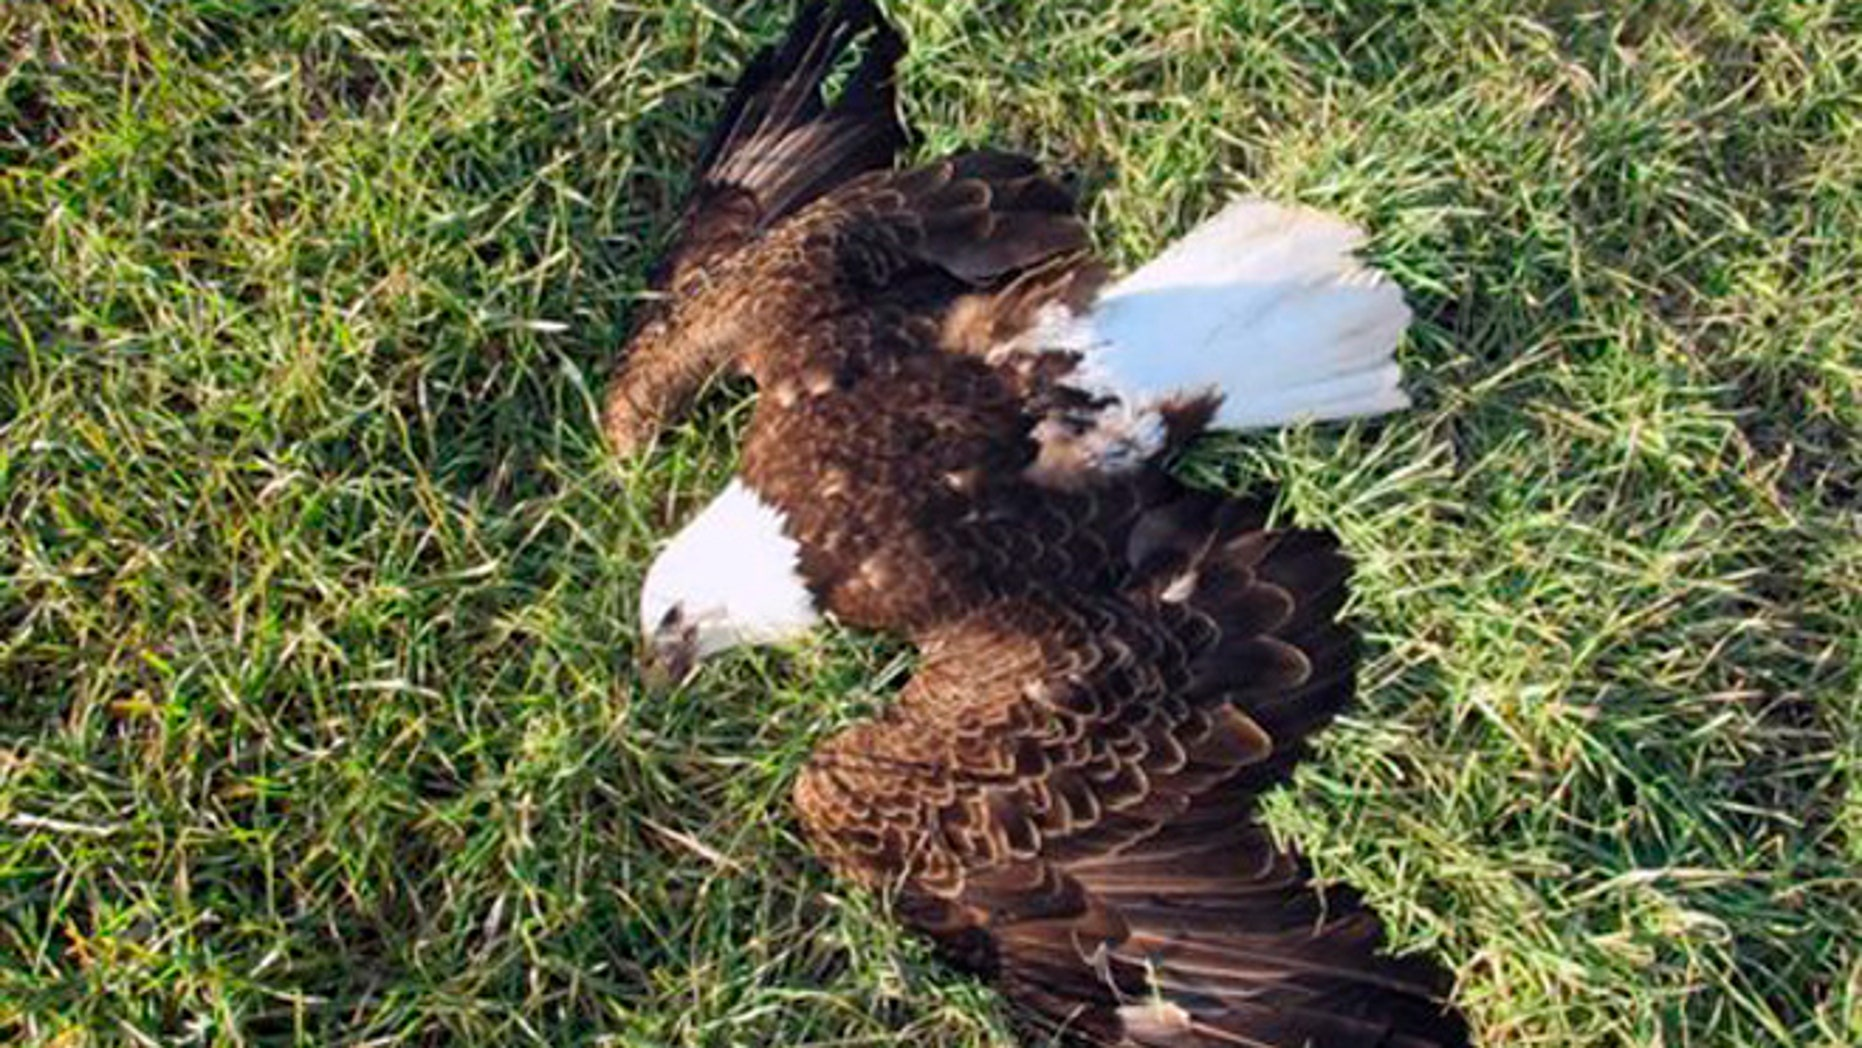 In this Feb. 20, 2016 photo, a bald eagle lies dead in Federalsburg, Md. Authorities say 13 bald eagles found dead near a farm on Maryland's Eastern Shore may have been poisoned.